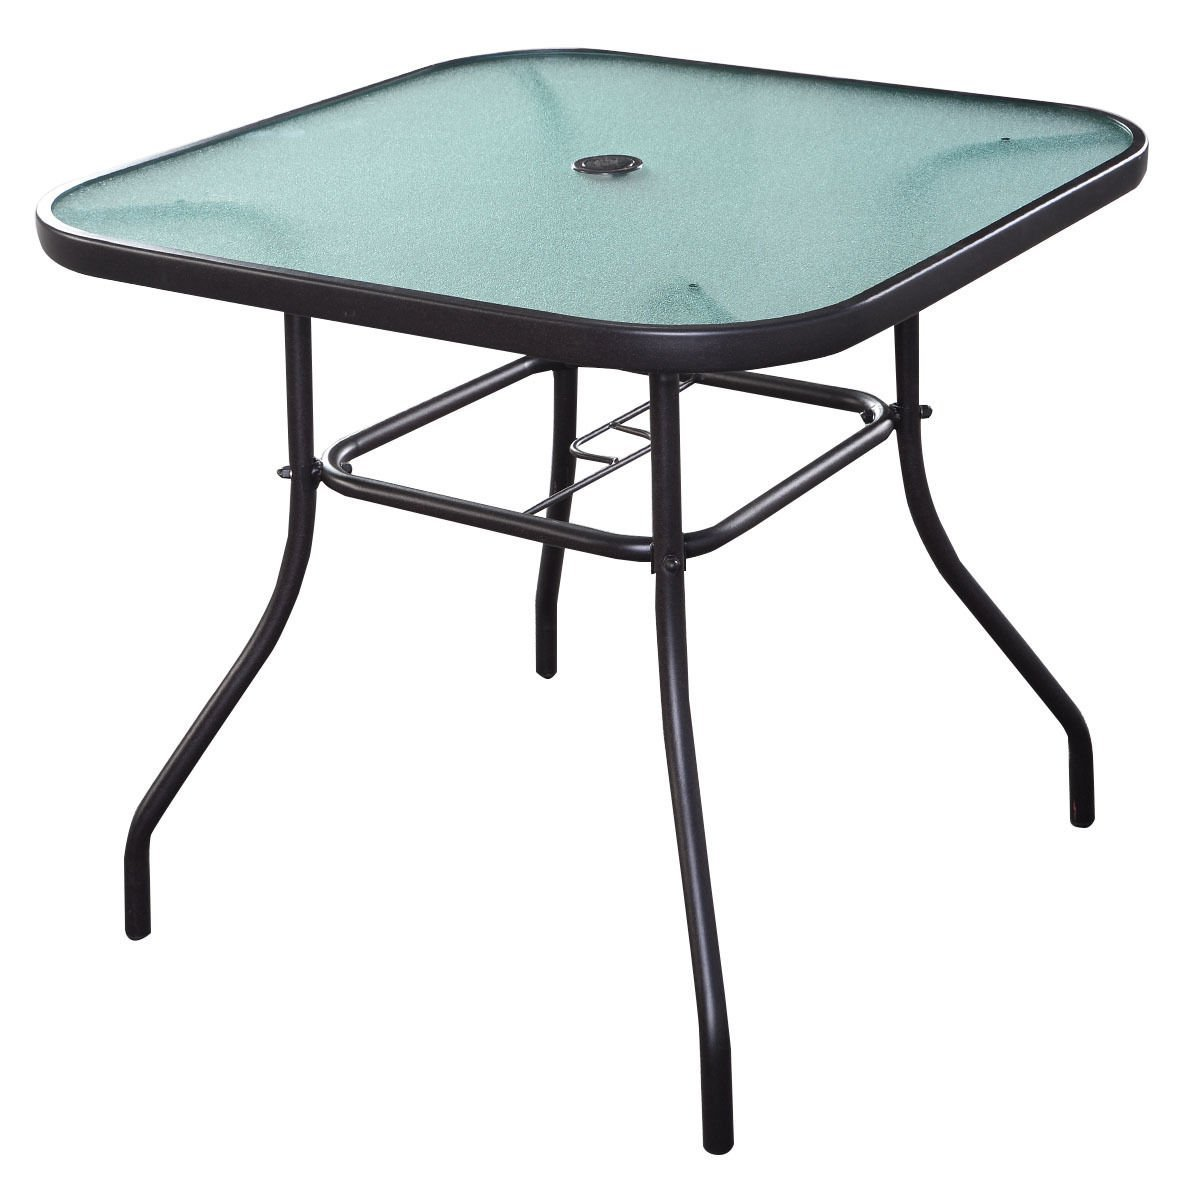 Giantex 32.5'' Outdoor Glass Table W/Tempered Tabletop and Umbrella Hole Square Outside Bar Table for Deck Garden Pool Outdoor Furniture Patio Table by Giantex